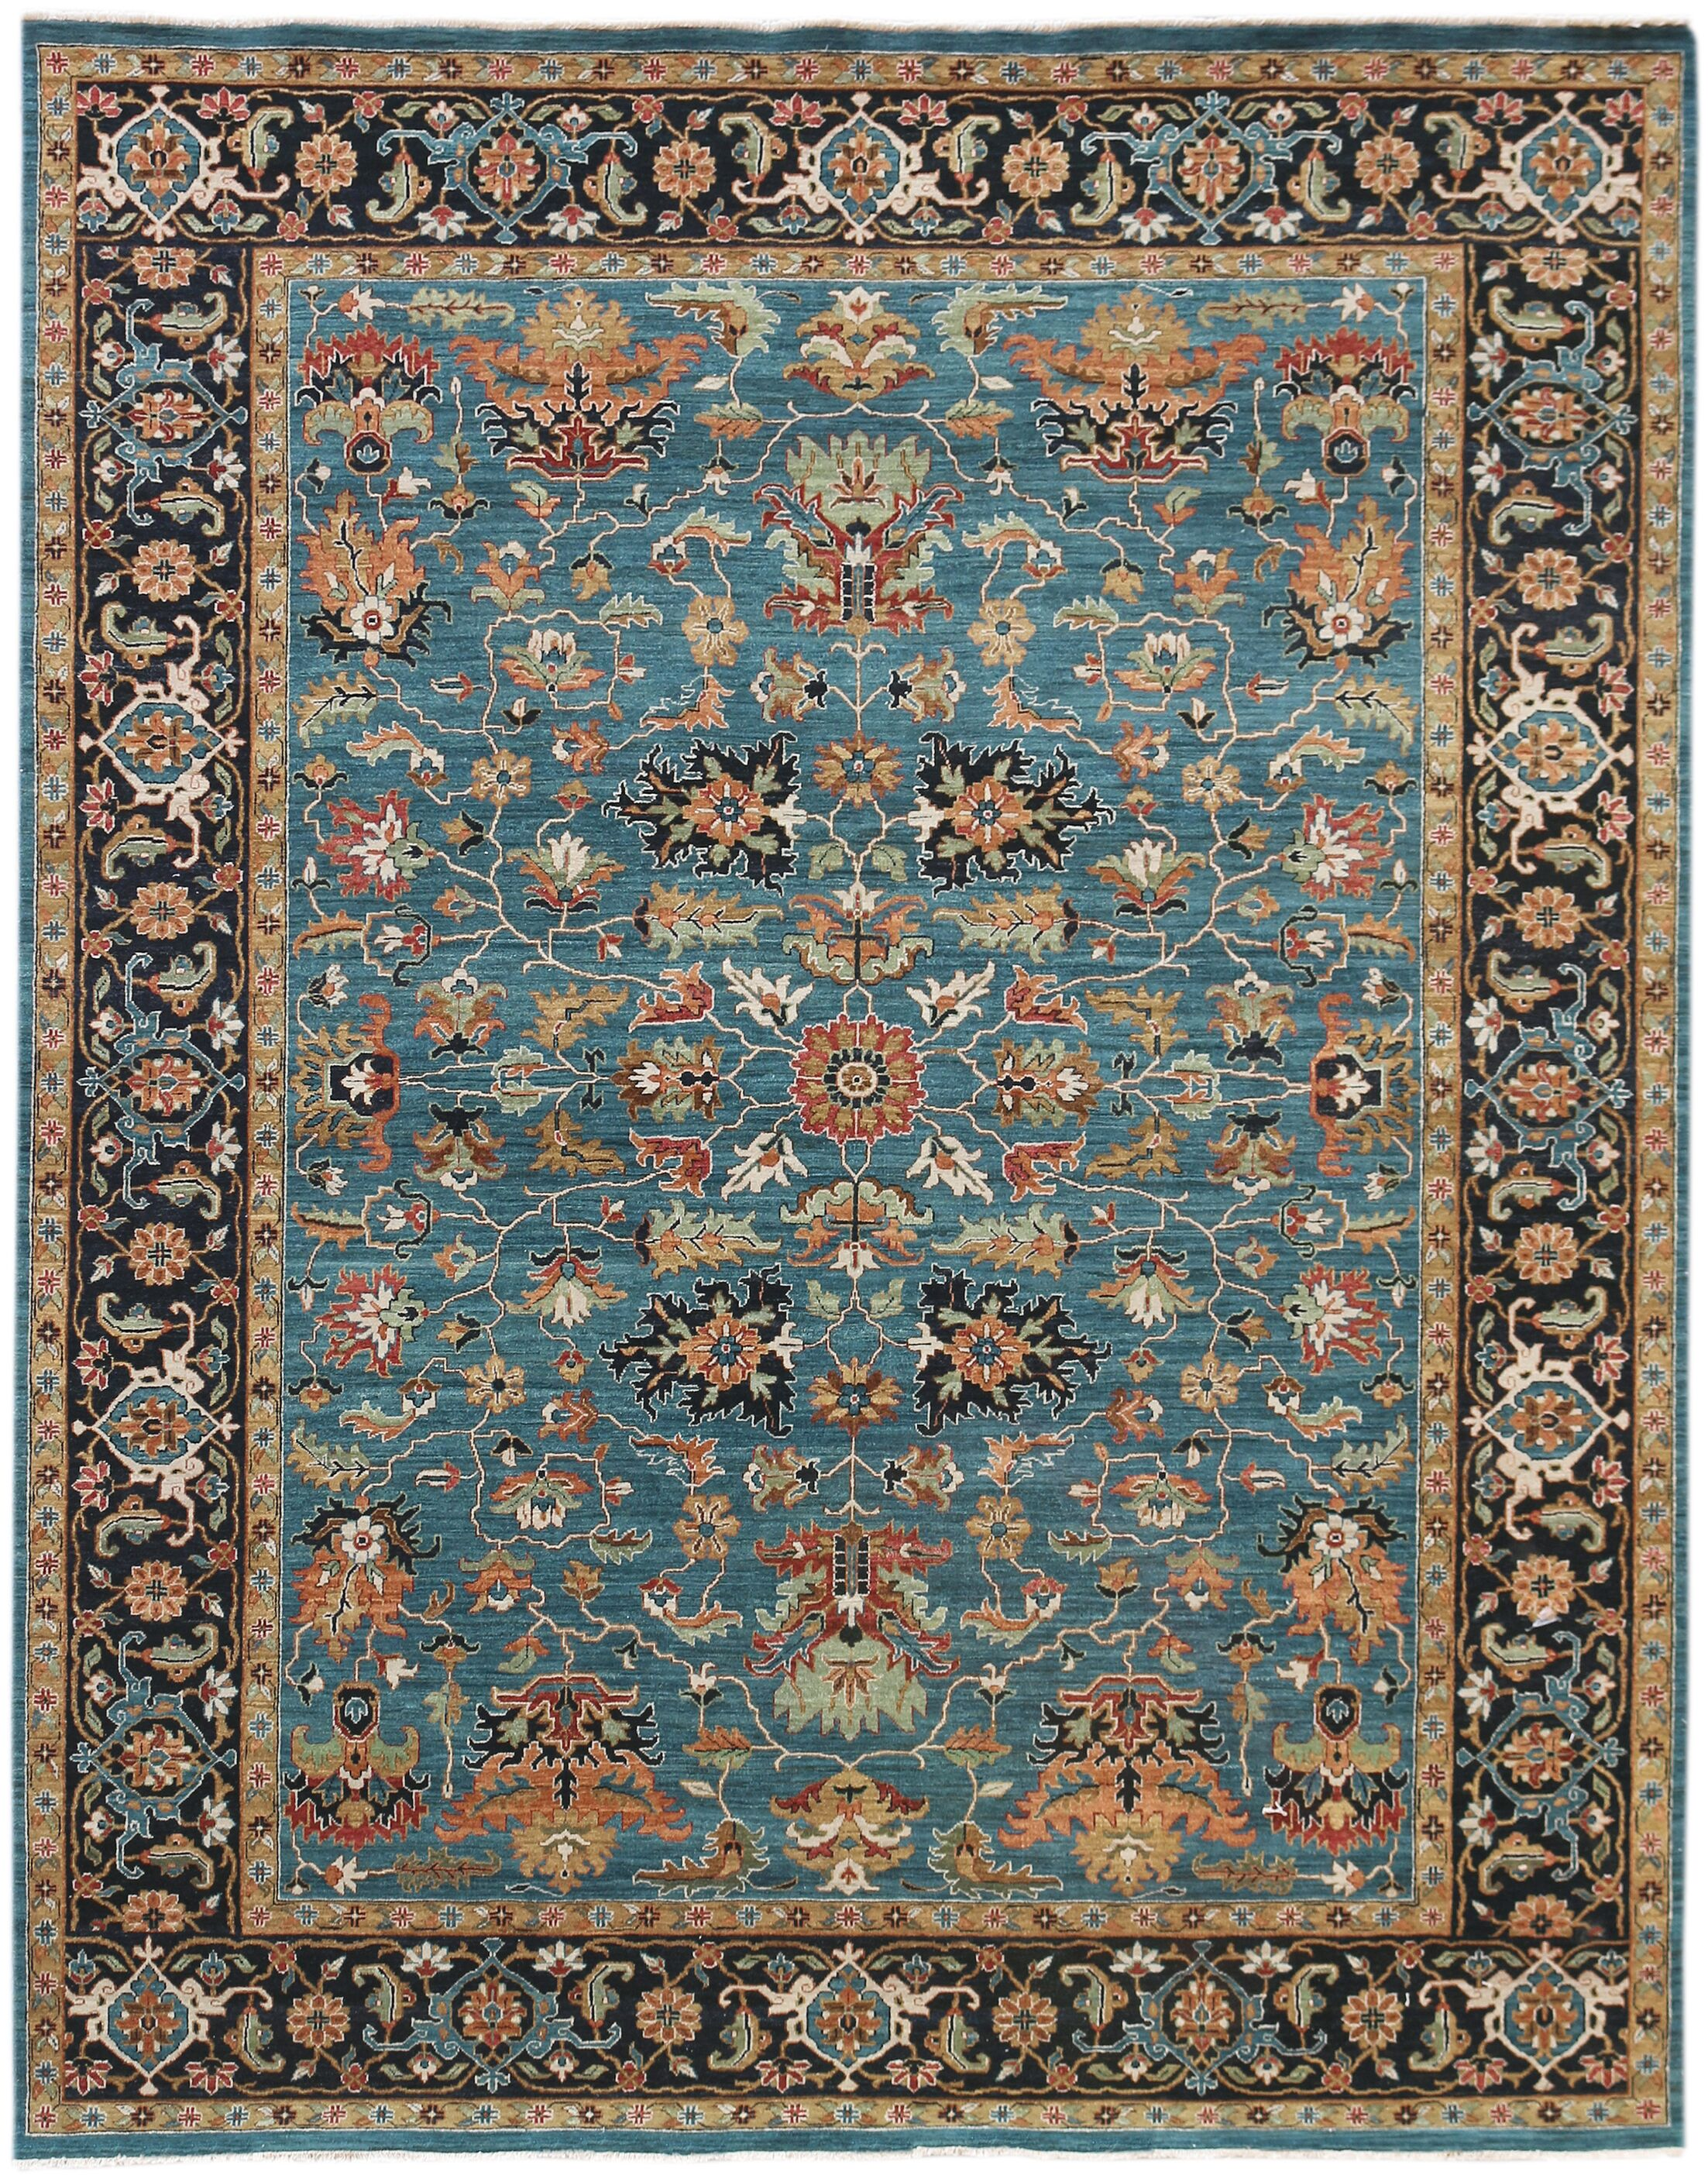 Lidiaídia Hand-Woven Wool Turquoise Area Rug Rug Size: Rectangle 12' x 15'